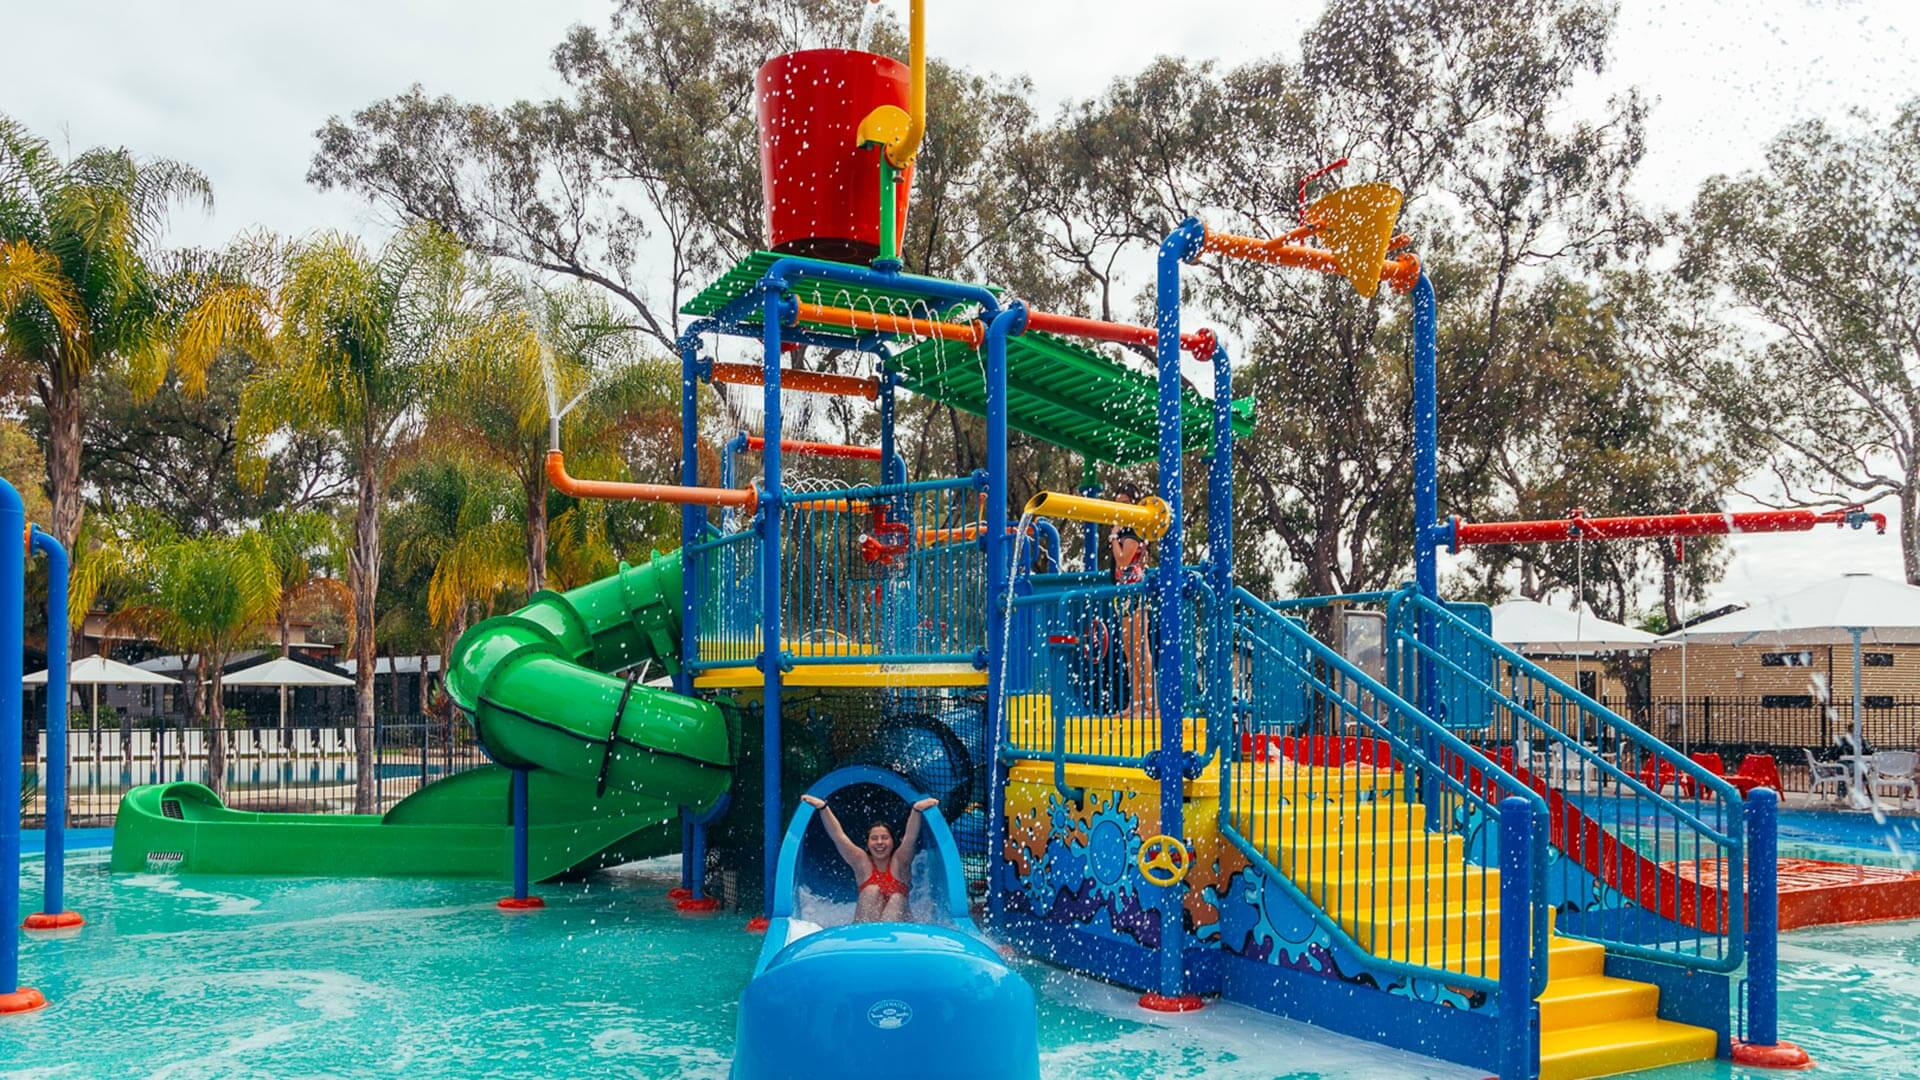 Water park at BIG4 Renmark Riverfront Holiday Park